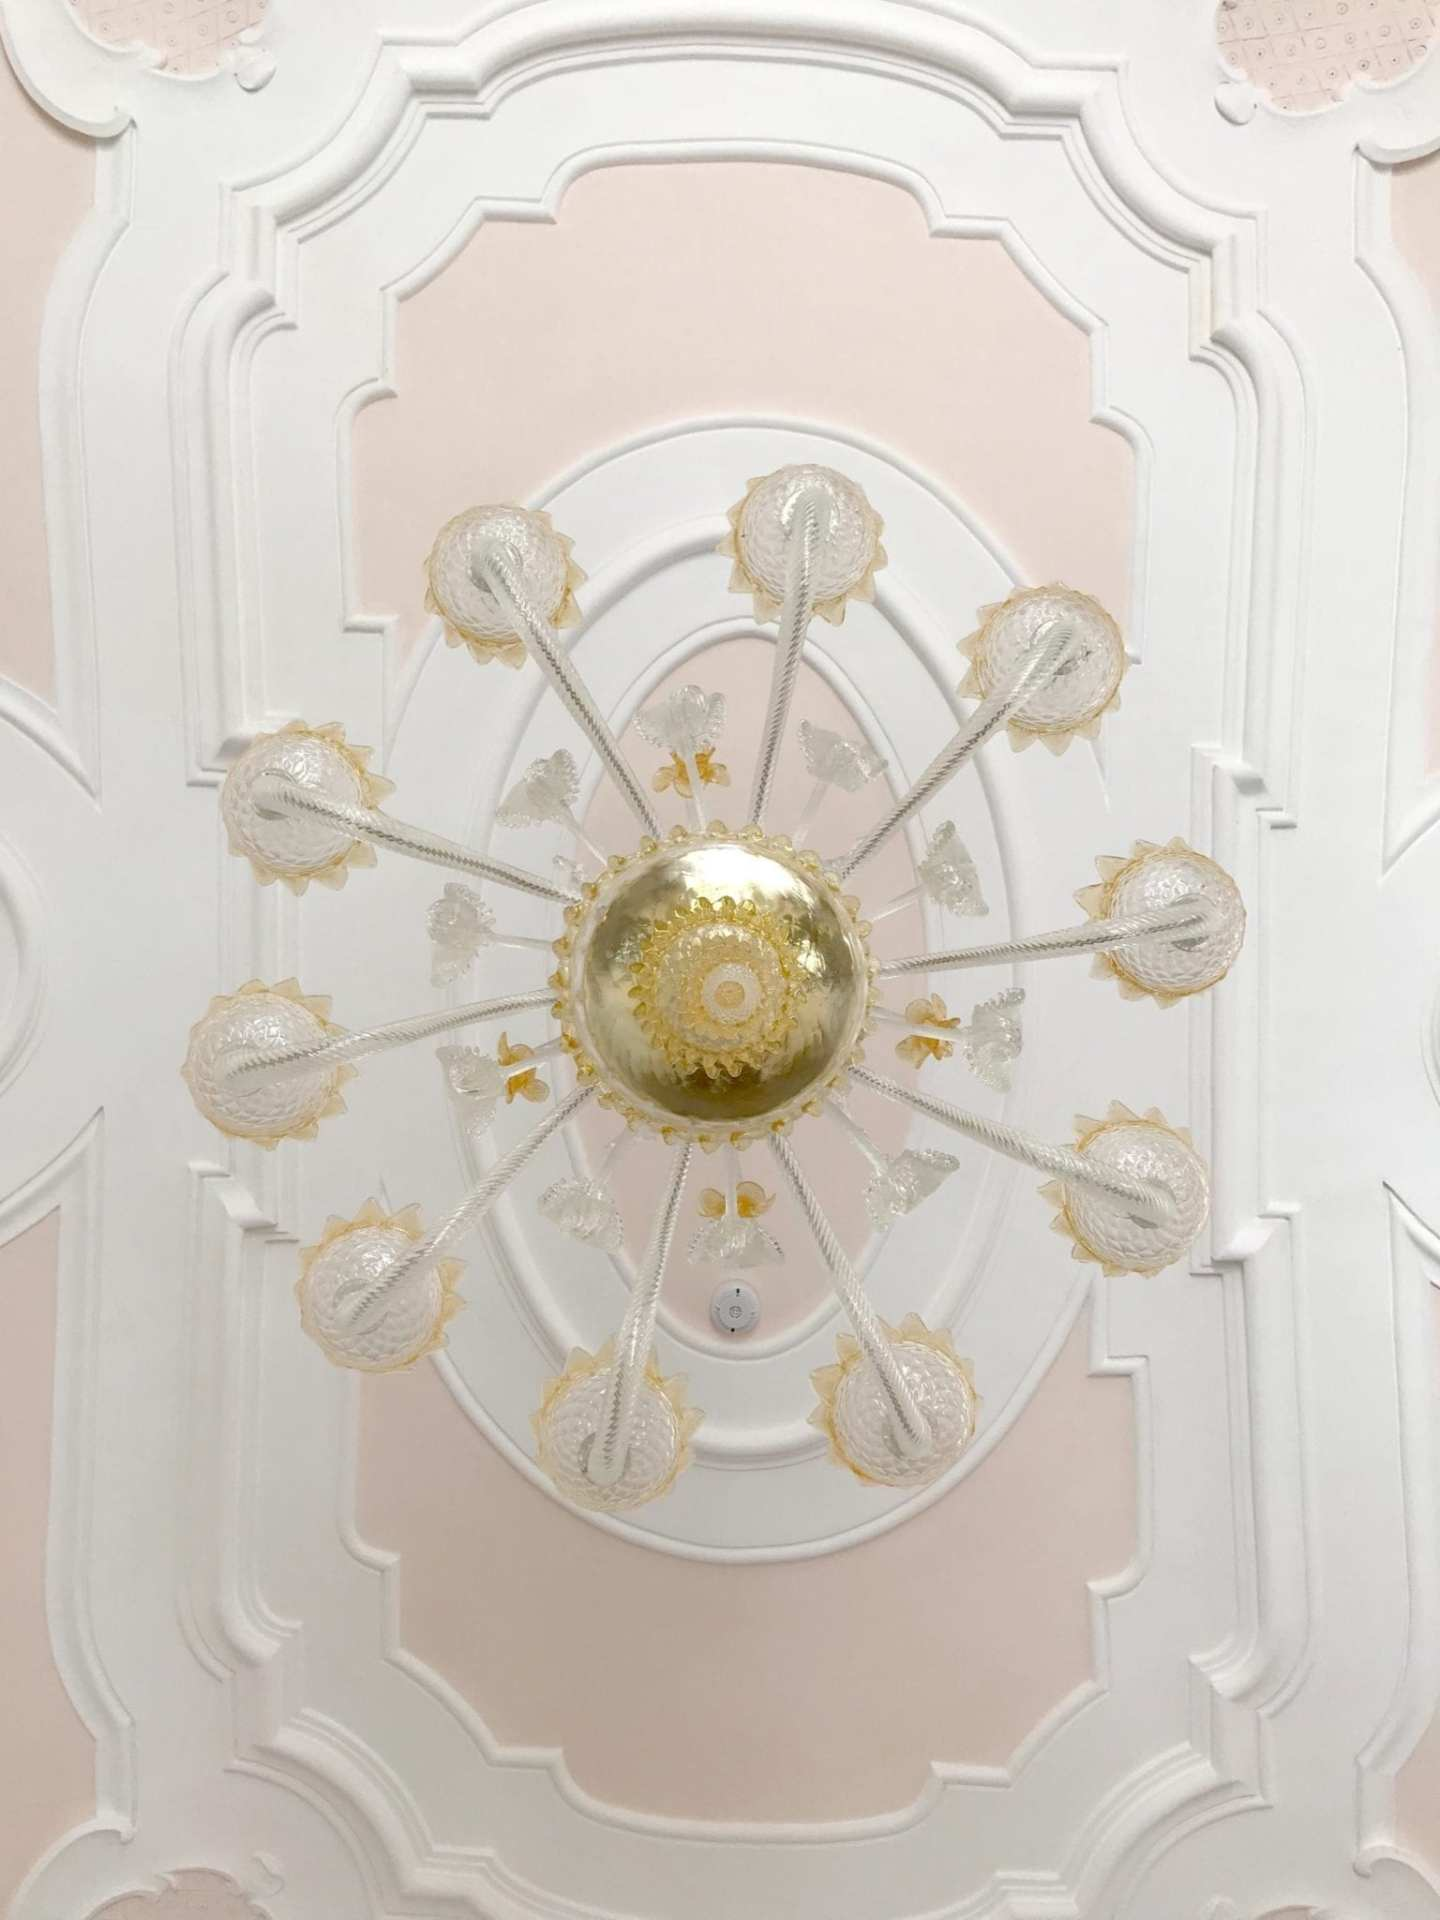 Villa Rufolo chandelier with pink ceiling.